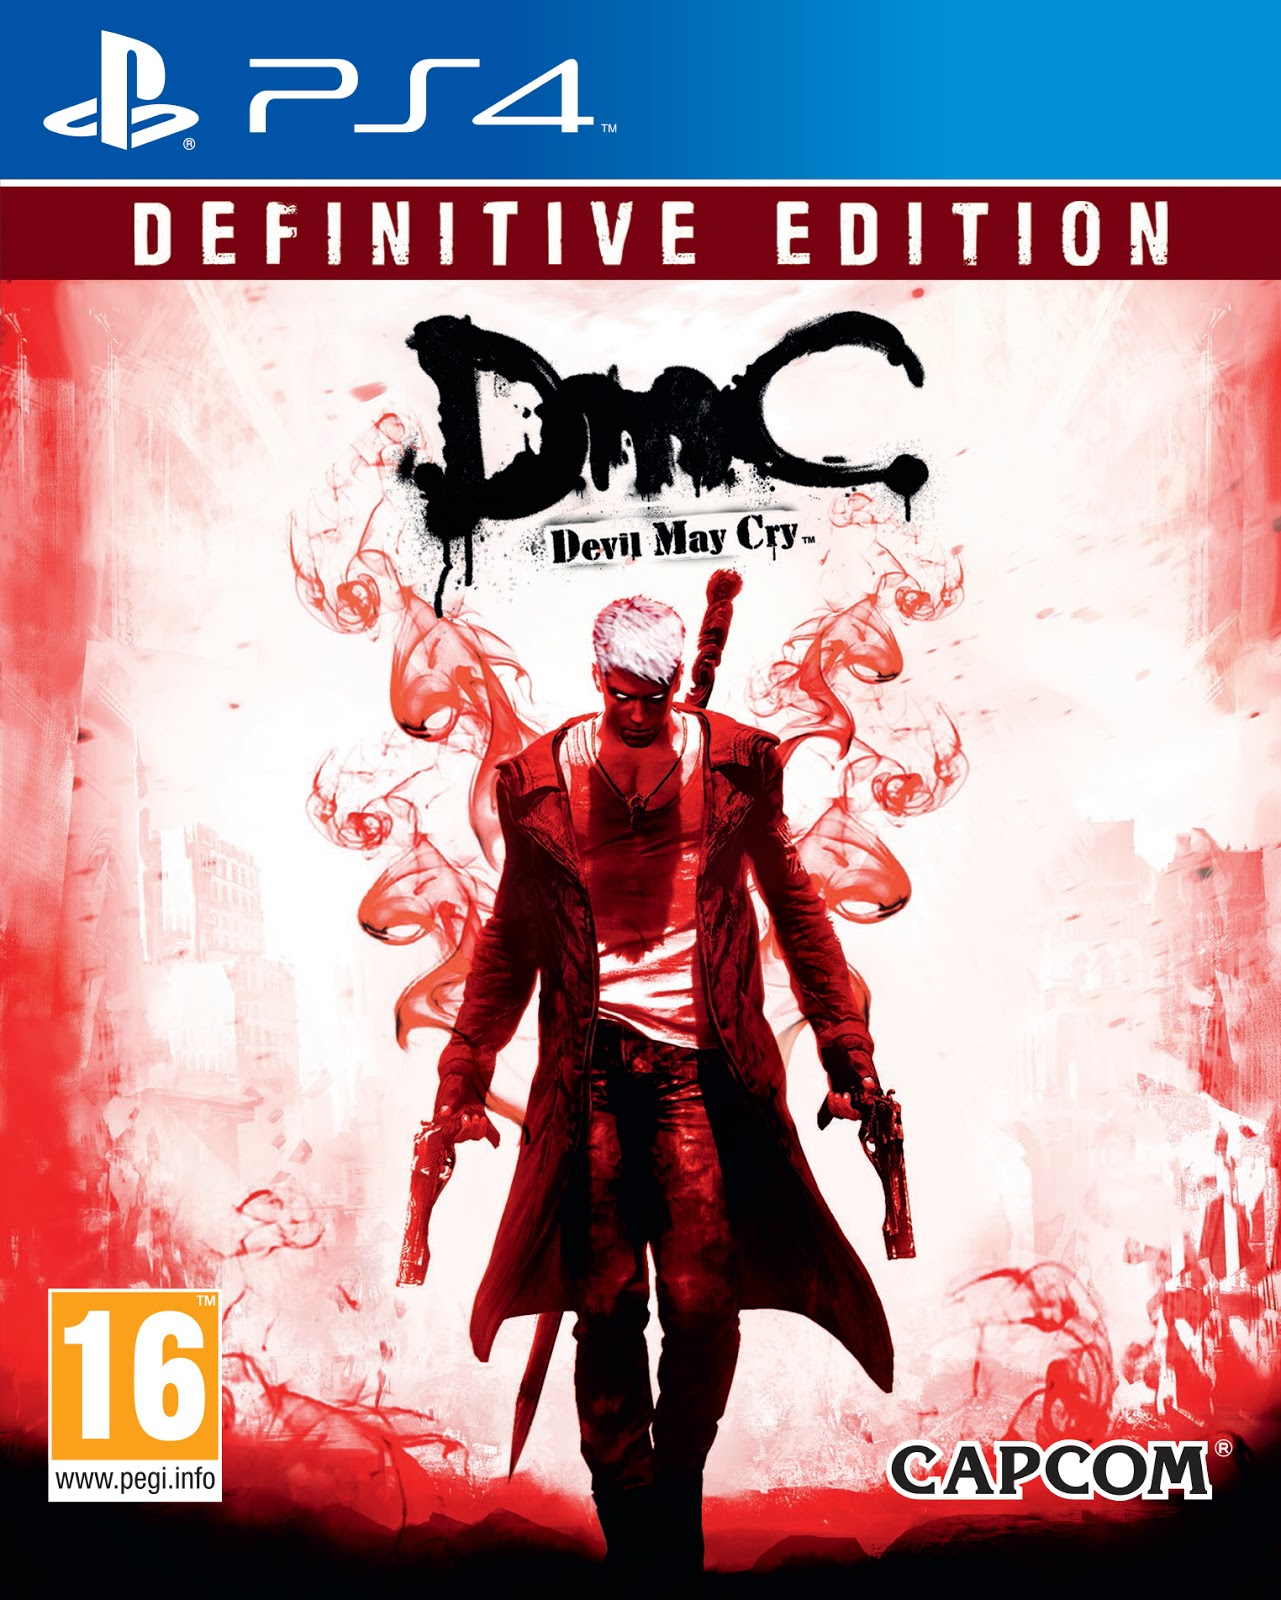 theVideoGameGallery 17277 1524x1903 - DmC Devil May Cry – Definitive Edition PS4 4.55 PKG